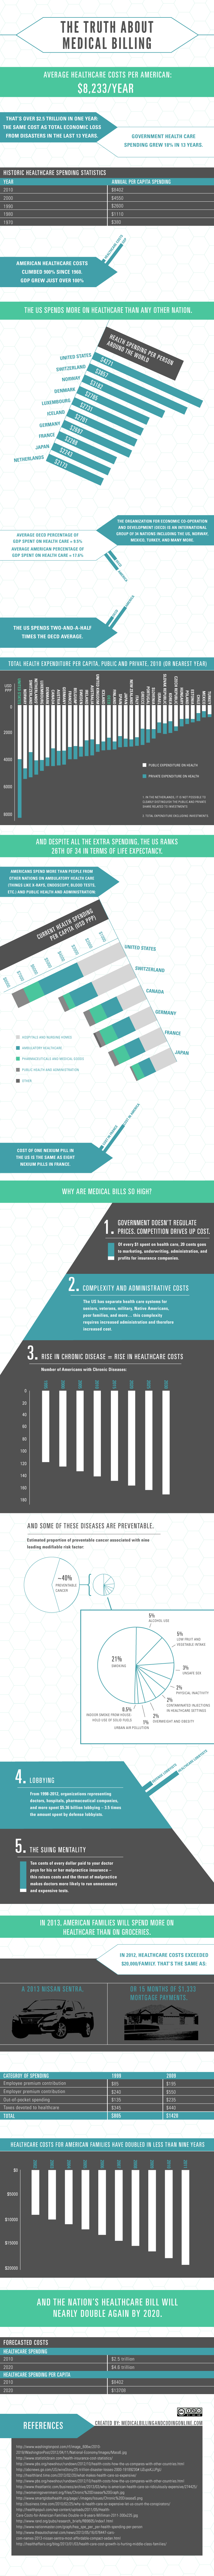 Medical Billing Infographic